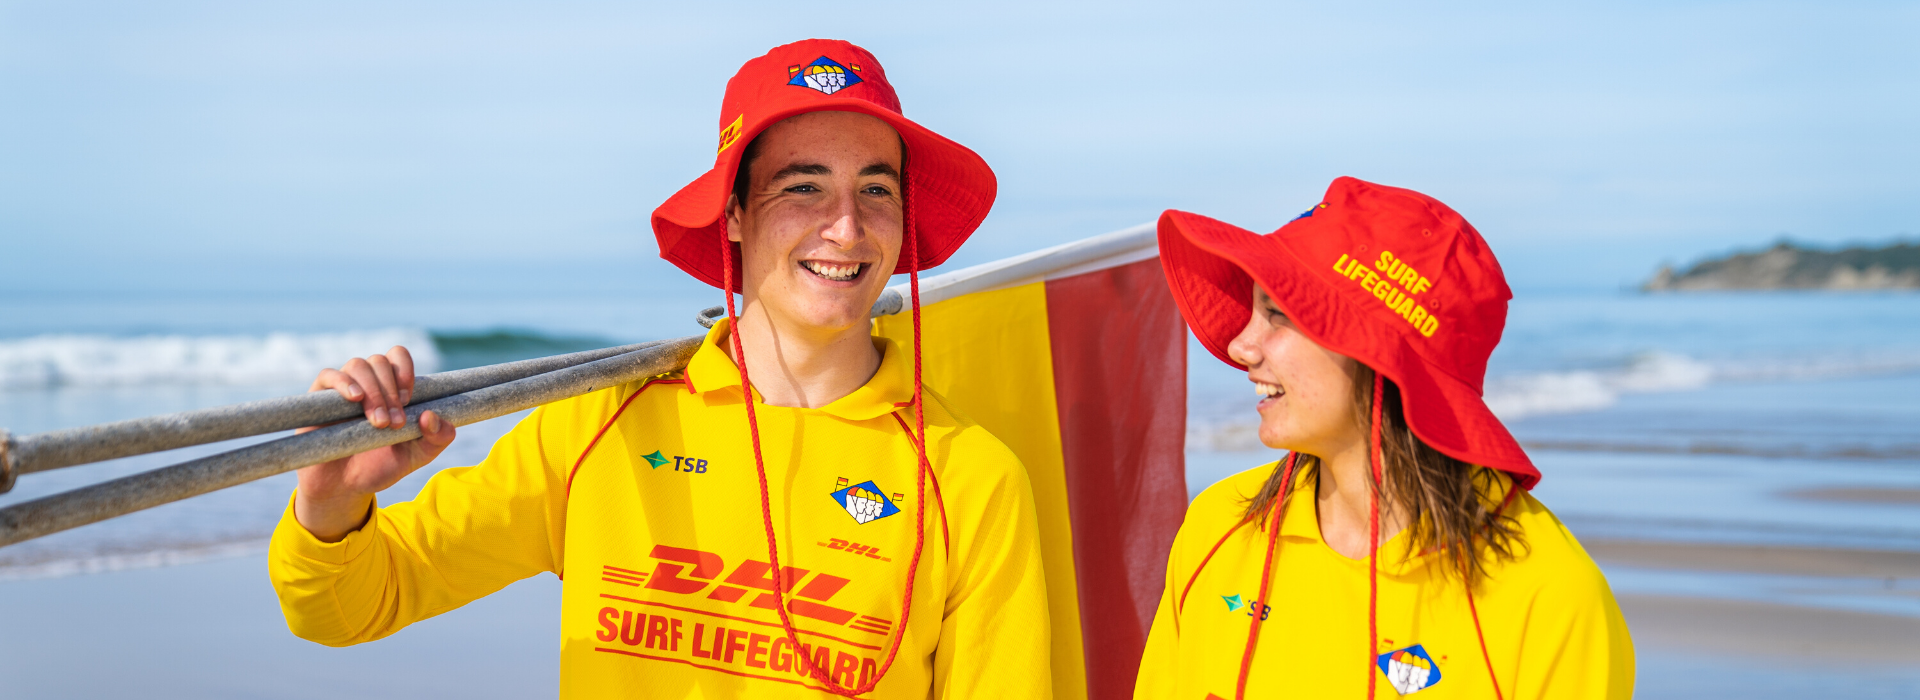 2020_Lifeguards Flags